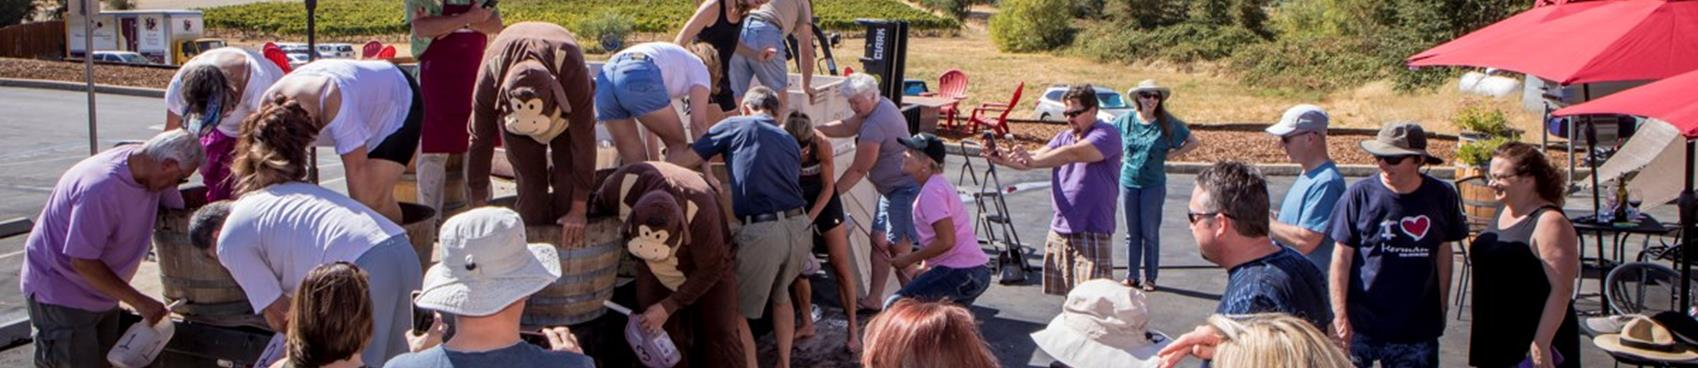 Purchase Tickets to Annual Grape Stomp & 3rd Quarter Wine Club Pick-up at Scott Harvey Wines on CellarPass